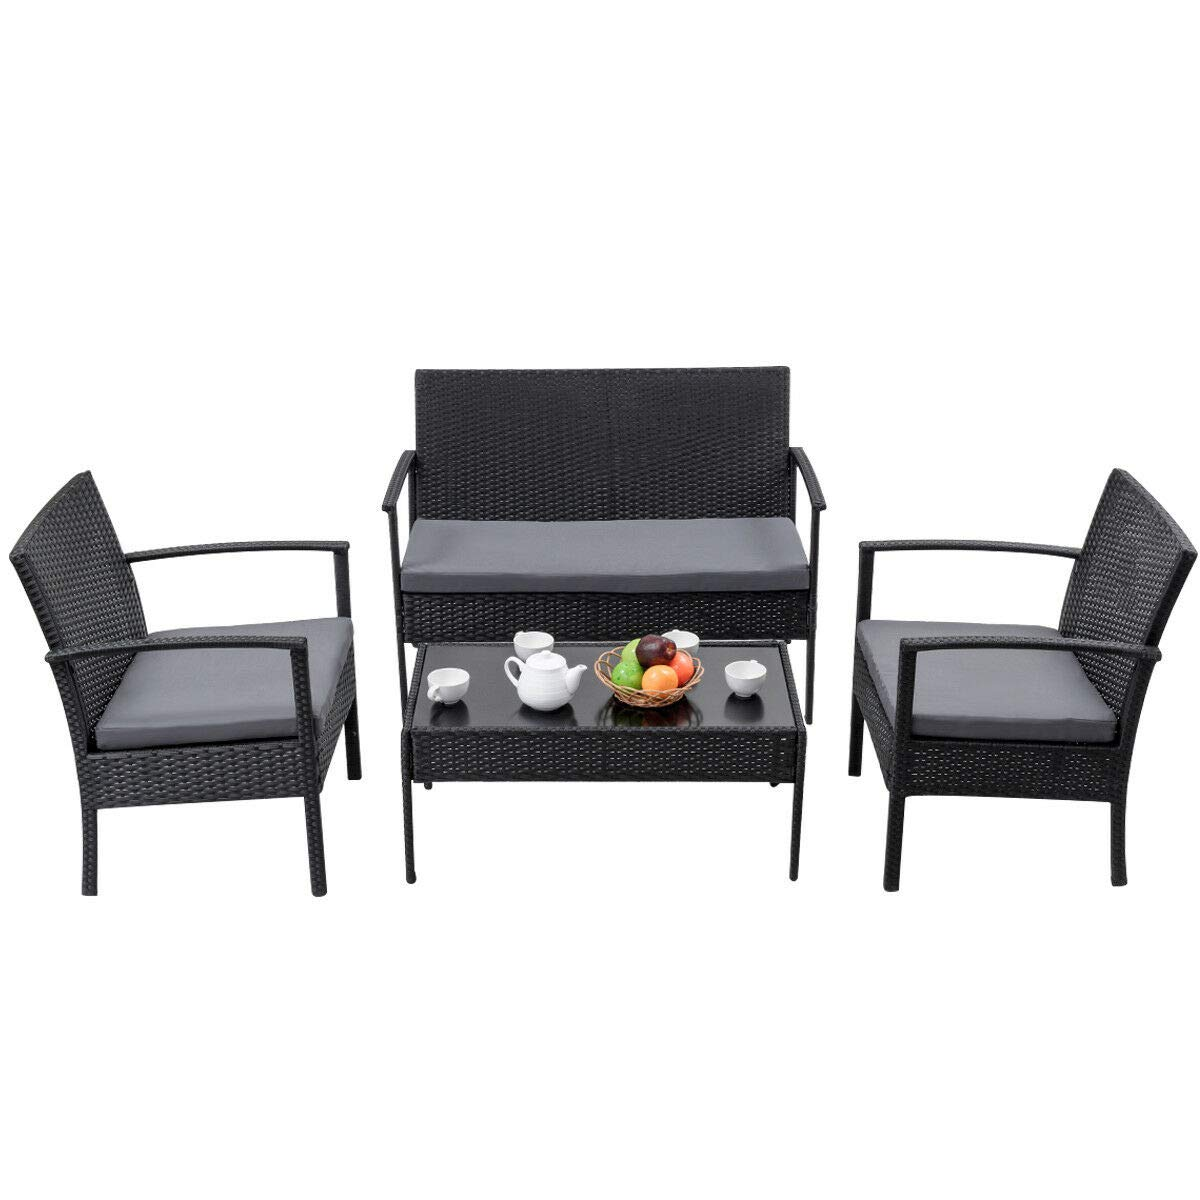 ANA Store Black Wicker Weaved Yard Seat Set of 4 Pcs Rectangle Body Tempered Glass Top Coffee Bar Sofa Side Talking Table with Bed Lounge 2 Armchair 4 Piece Rattan Outdoor Patio Group Dining Table